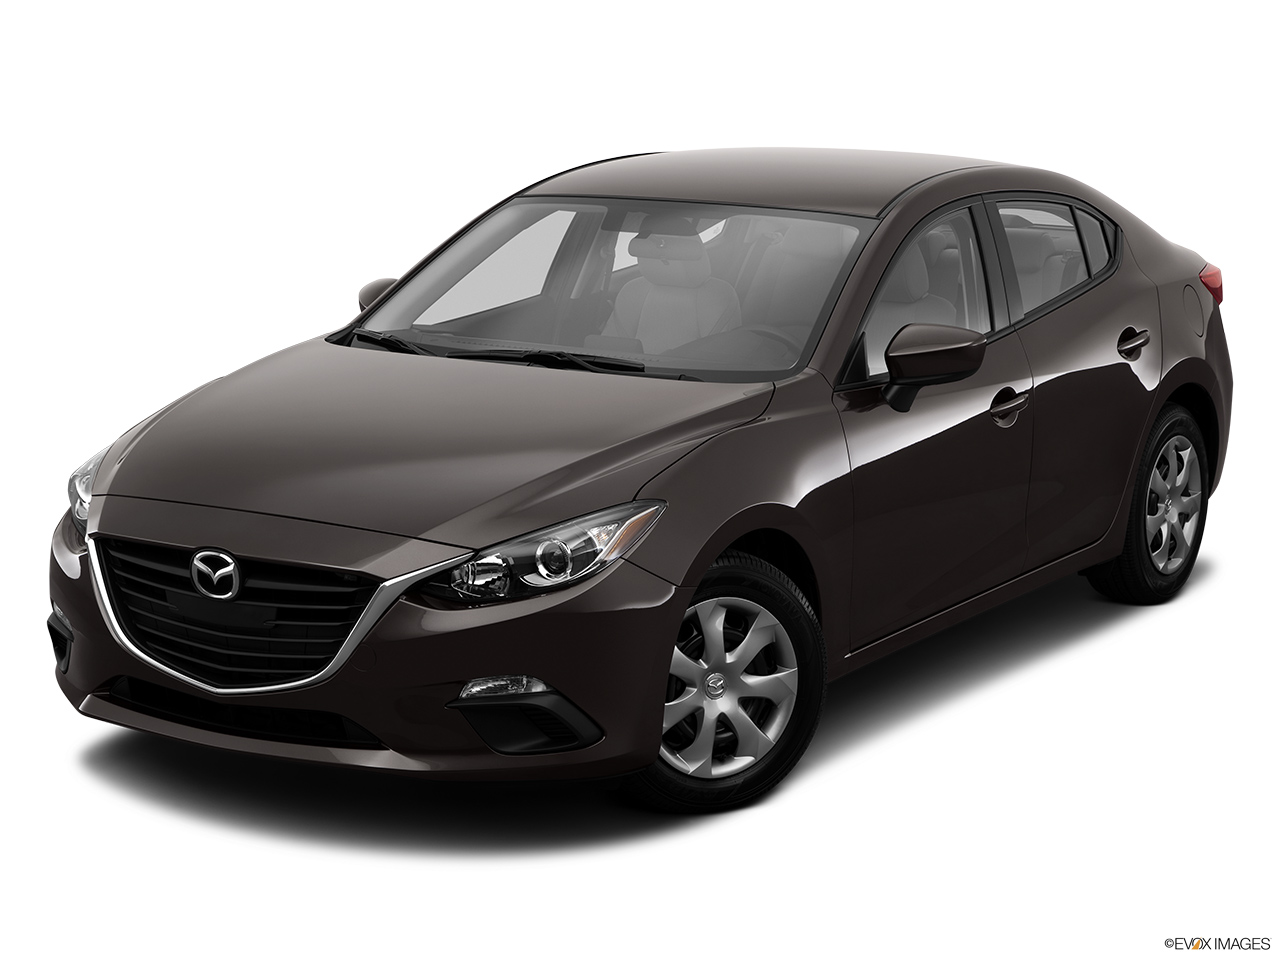 2014 mazda 3 maintenance specifications autos weblog. Black Bedroom Furniture Sets. Home Design Ideas